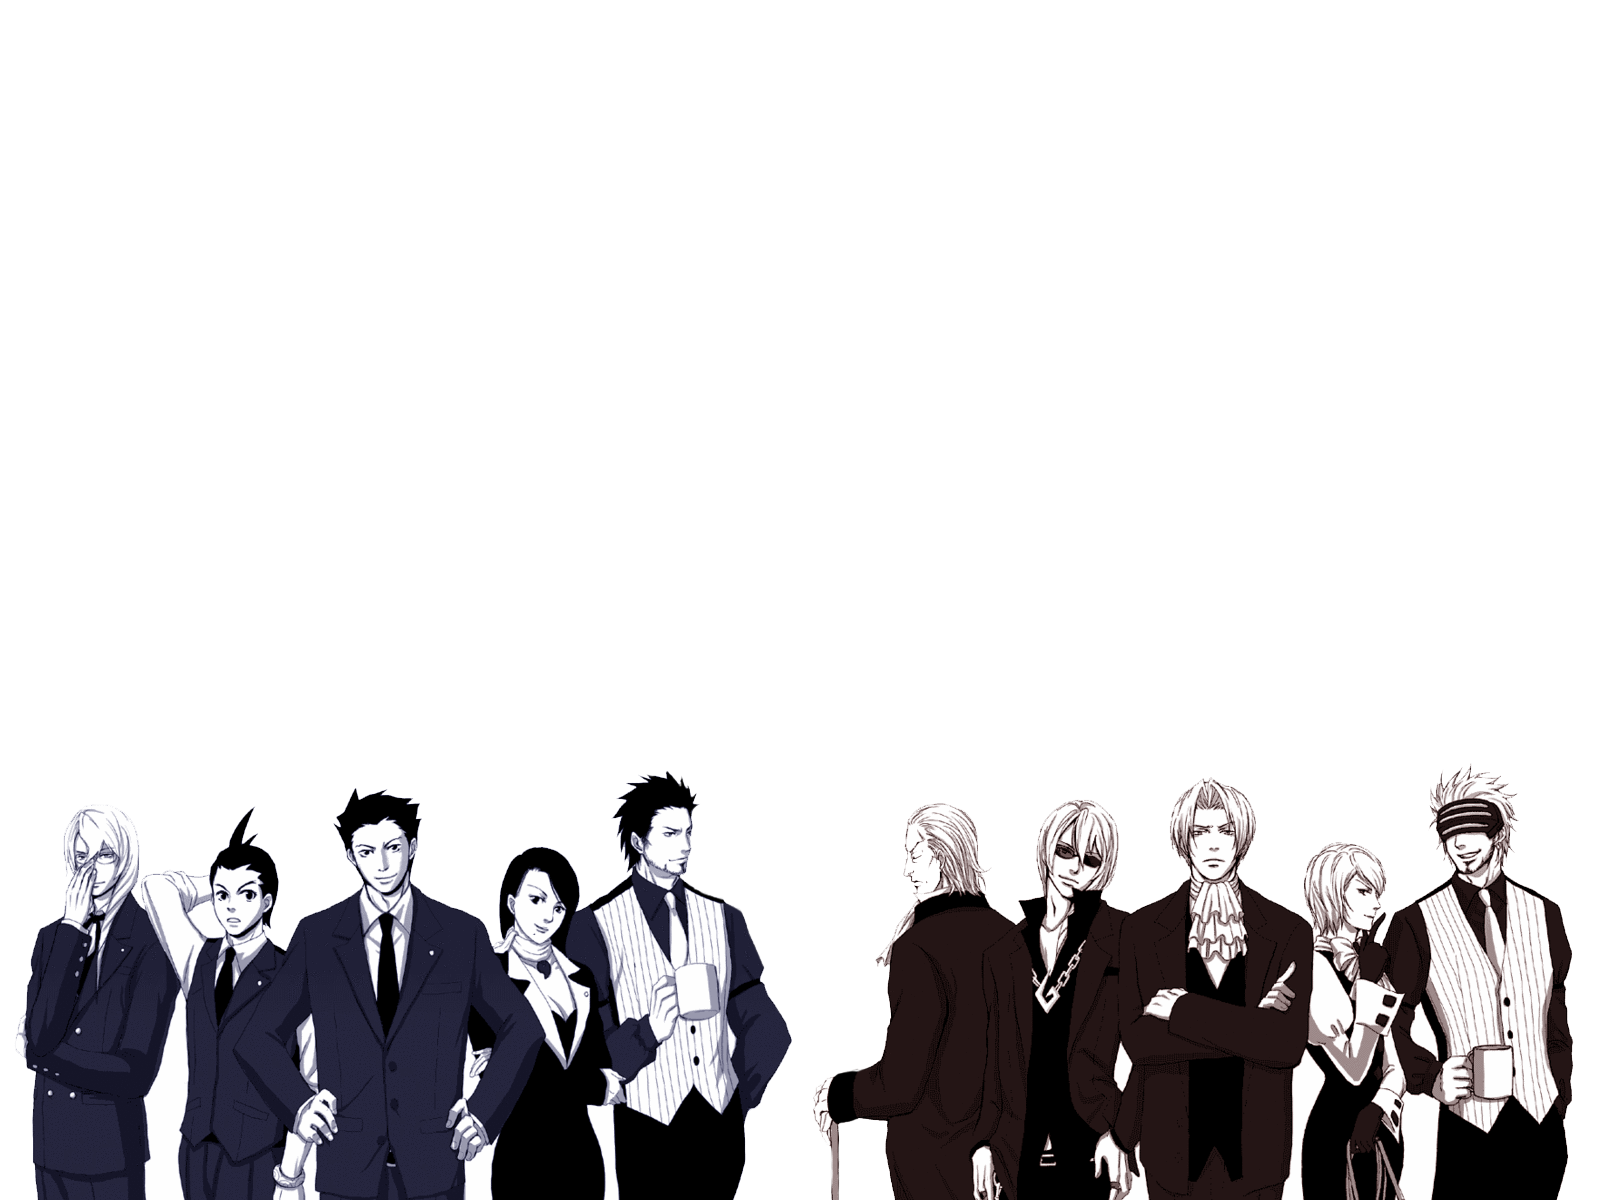 Phoenix Wright Ace Attorney Wallpaper And Background Image